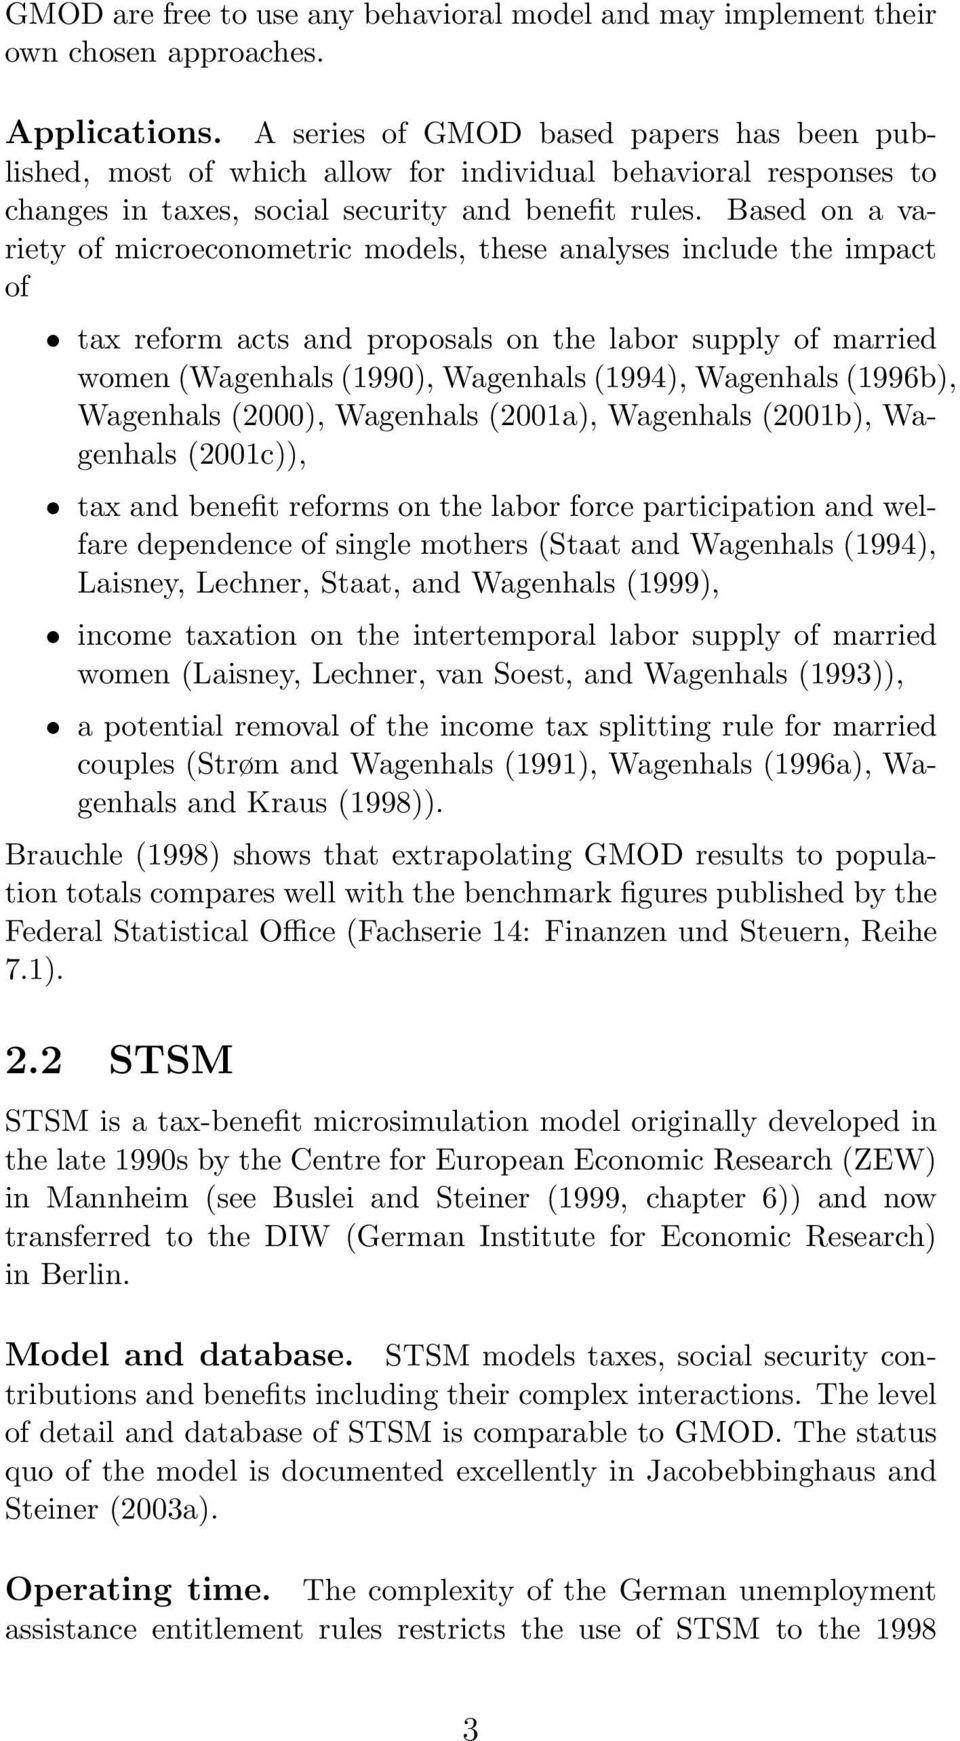 Based on a variety of microeconometric models, these analyses include the impact of tax reform acts and proposals on the labor supply of married women (Wagenhals (1990), Wagenhals (1994), Wagenhals